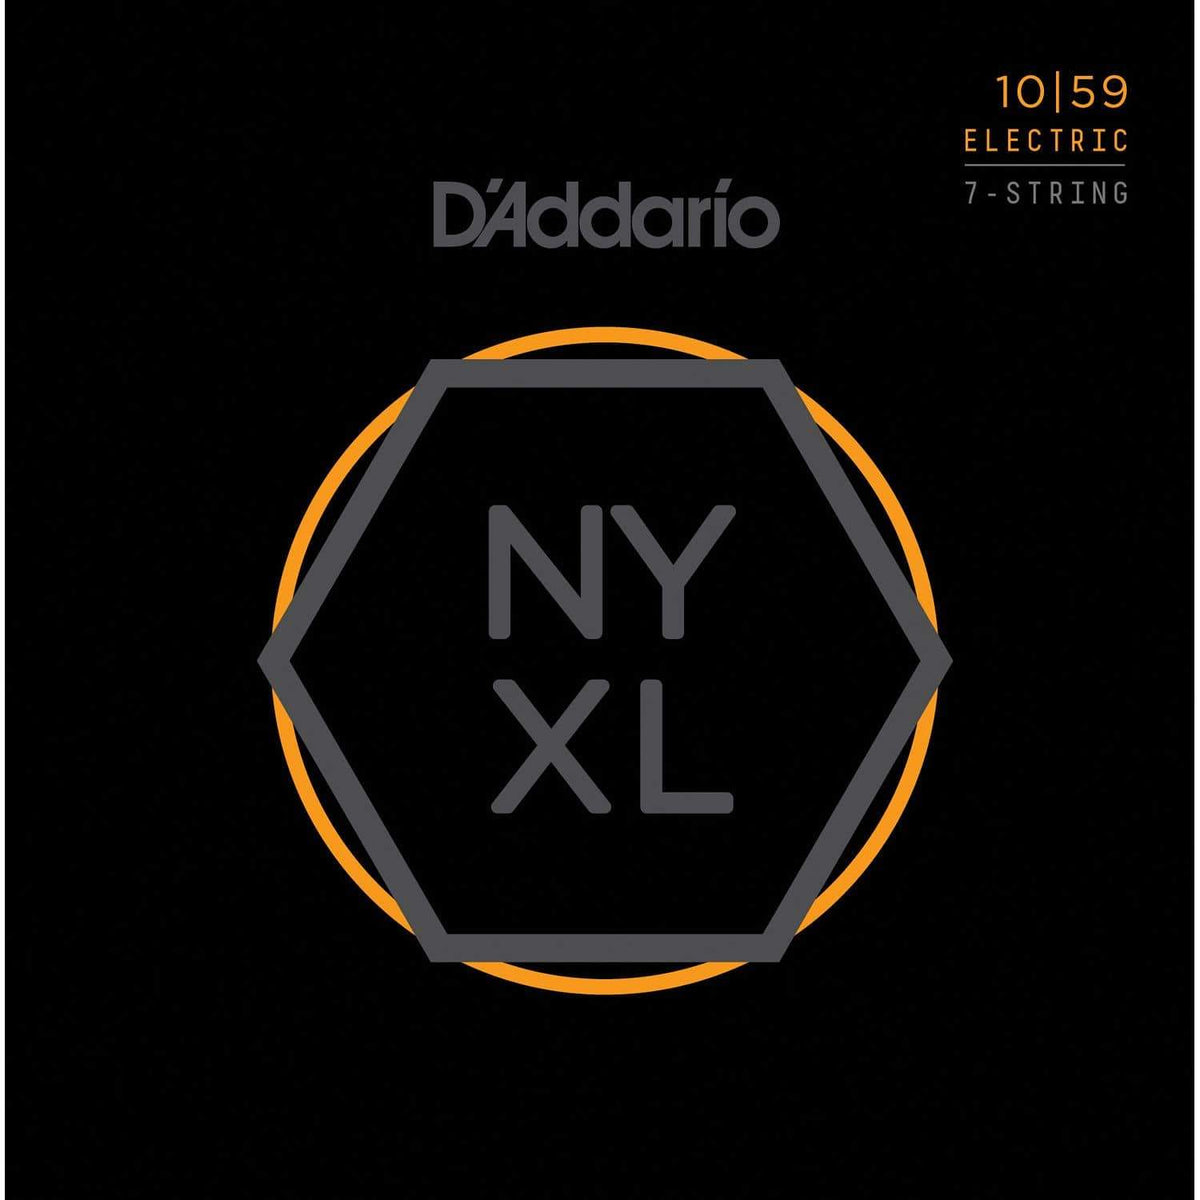 D'ADDARIO STRINGS - ELECTRIC GUITAR STRINGS Default NYXL1059 Nickel Wound 7-String Electric Guitar Strings, Regular Light, 10-59